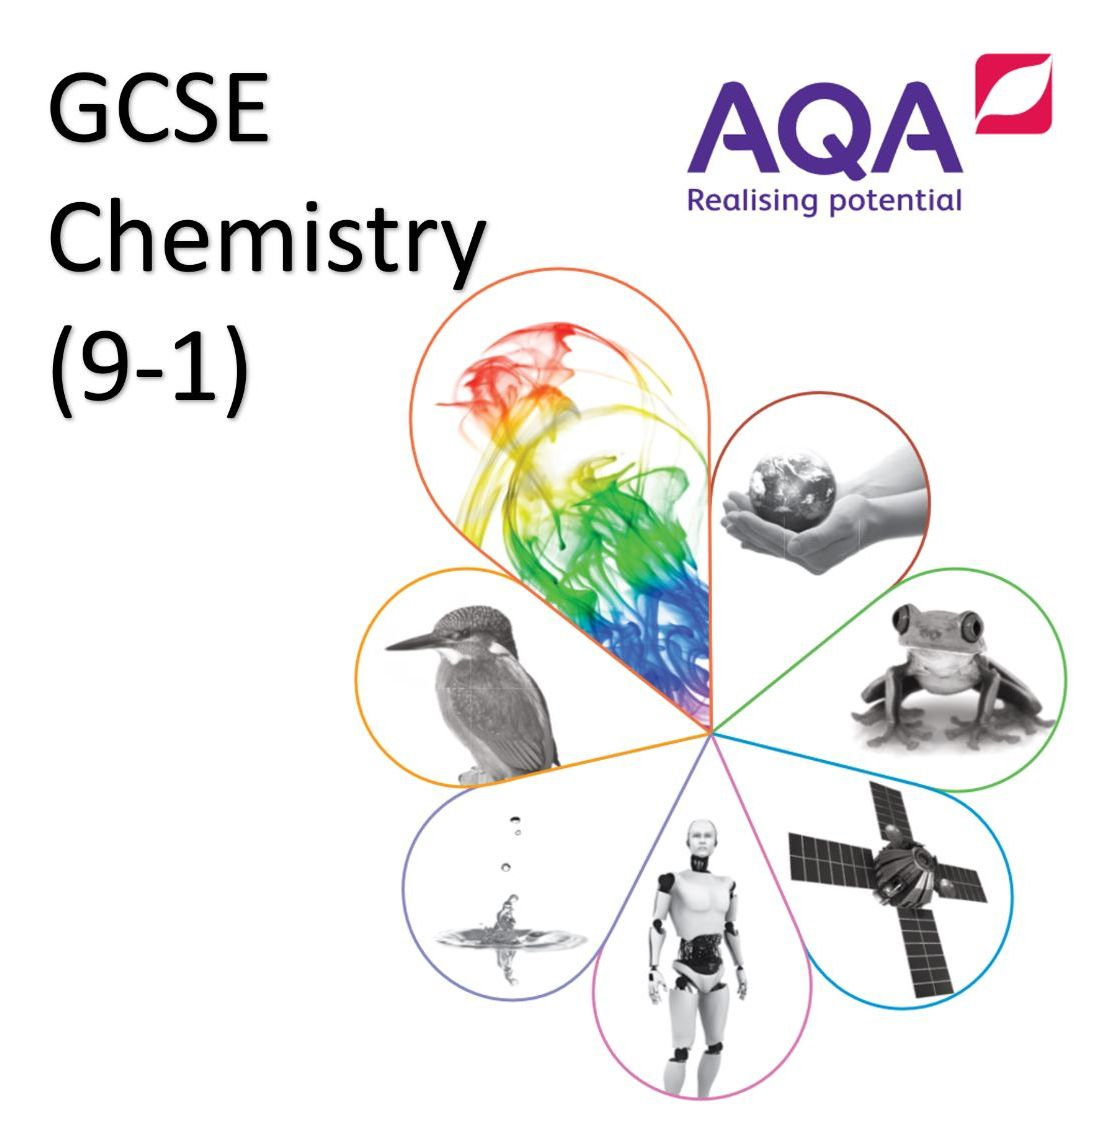 AQA GCSE Chemistry (9-1) Paper 1&2 Double Science Revision Summary Sheets